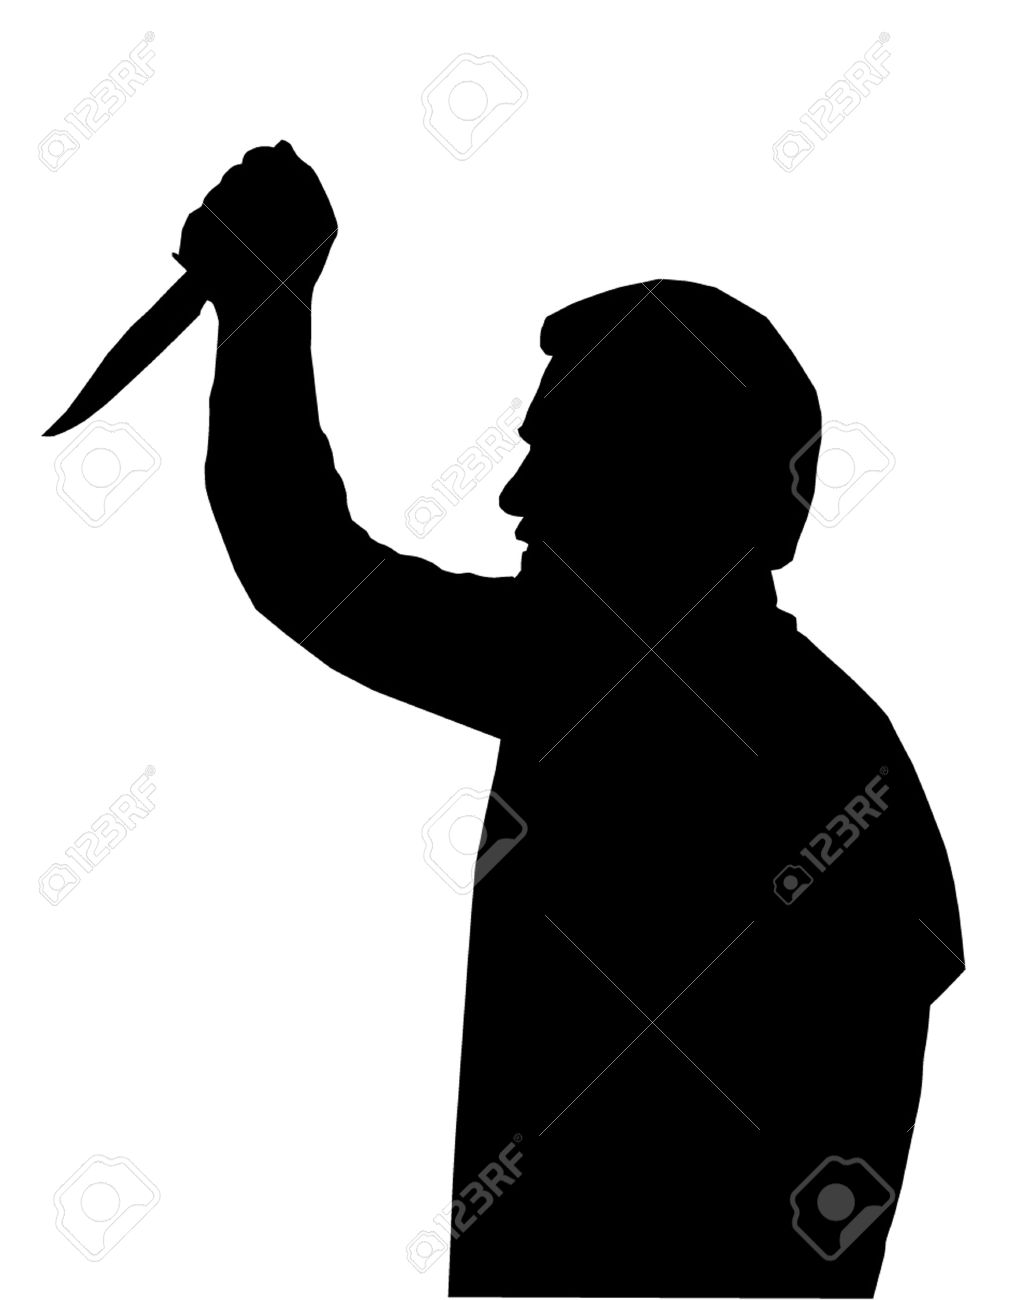 Man in suit with gun silhouette